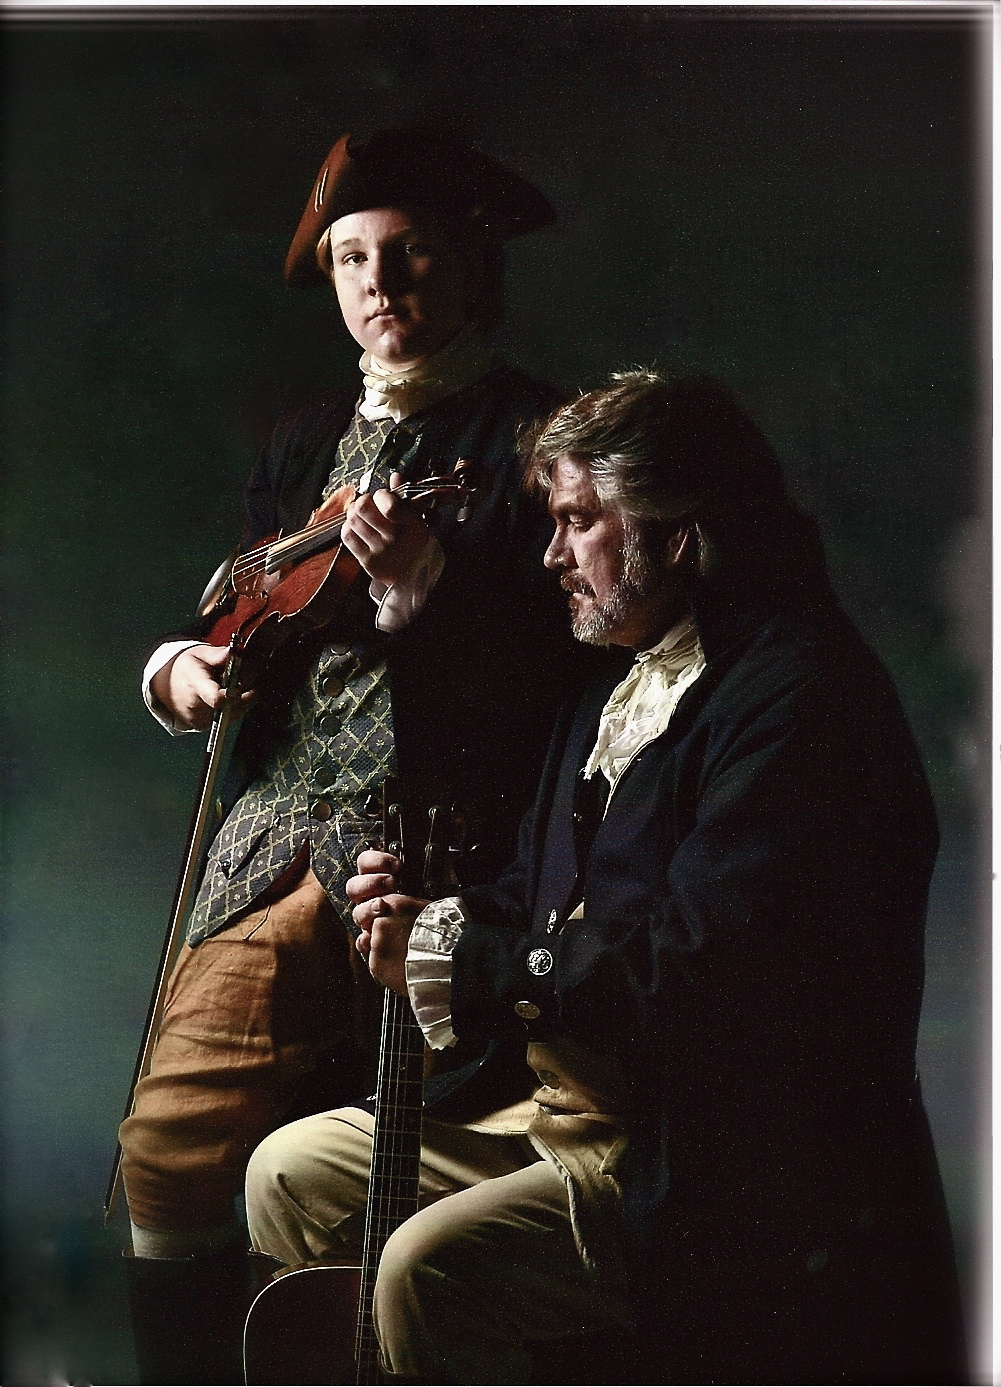 James and Jim Hogg dressed in Revolutionary War attire.